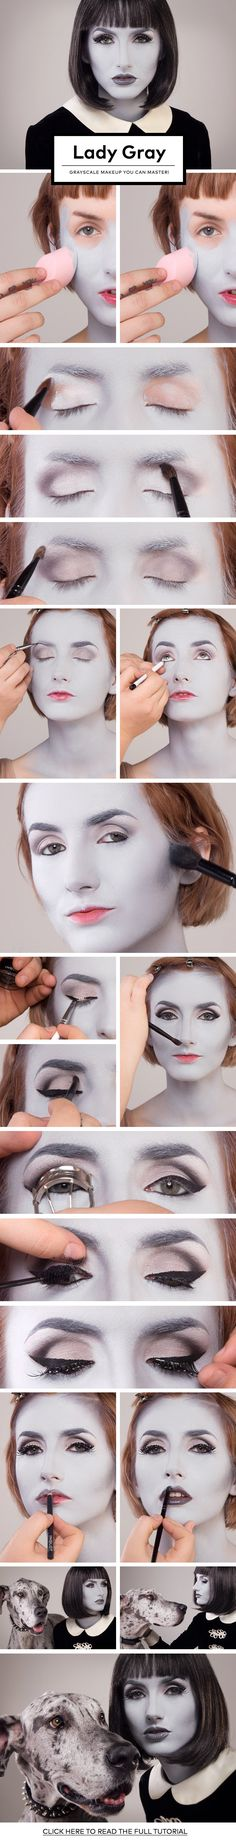 Lady Gray: Grayscale Makeup You Can Master! Lady Gray: Grayscale Makeup You Can Master! Makeup Fx, Cosplay Makeup, Costume Makeup, Party Makeup, Makeup Ideas, Ghost Makeup, Face Makeup, Costume Halloween, Boo Costume